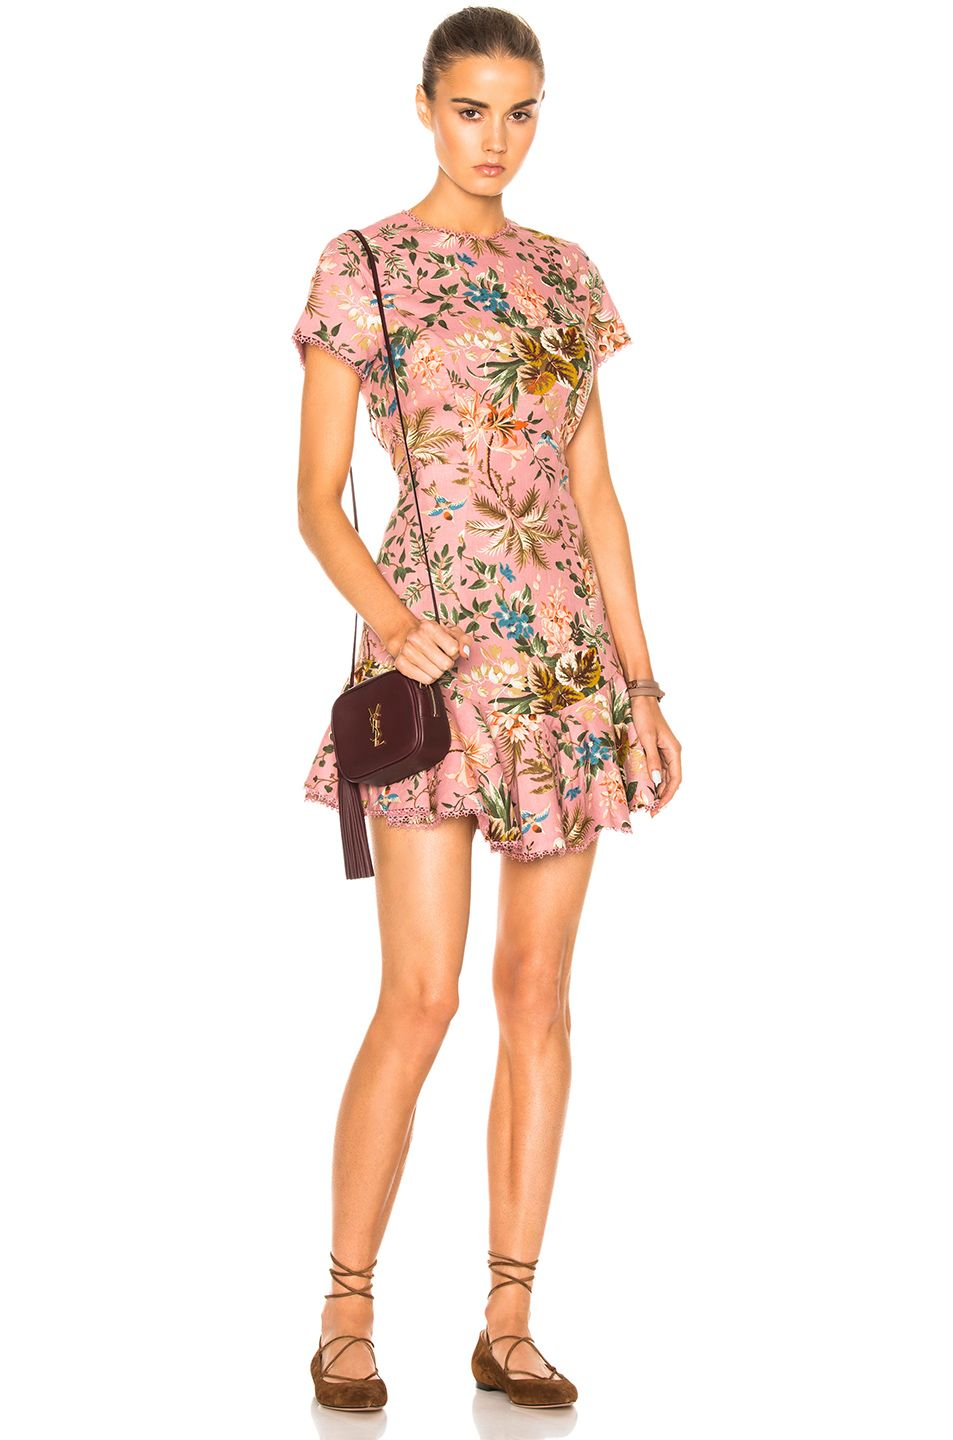 95ad57cb66bf3 Image 2 of Zimmermann Tropicale Lattice Dress in Pink Floral ...